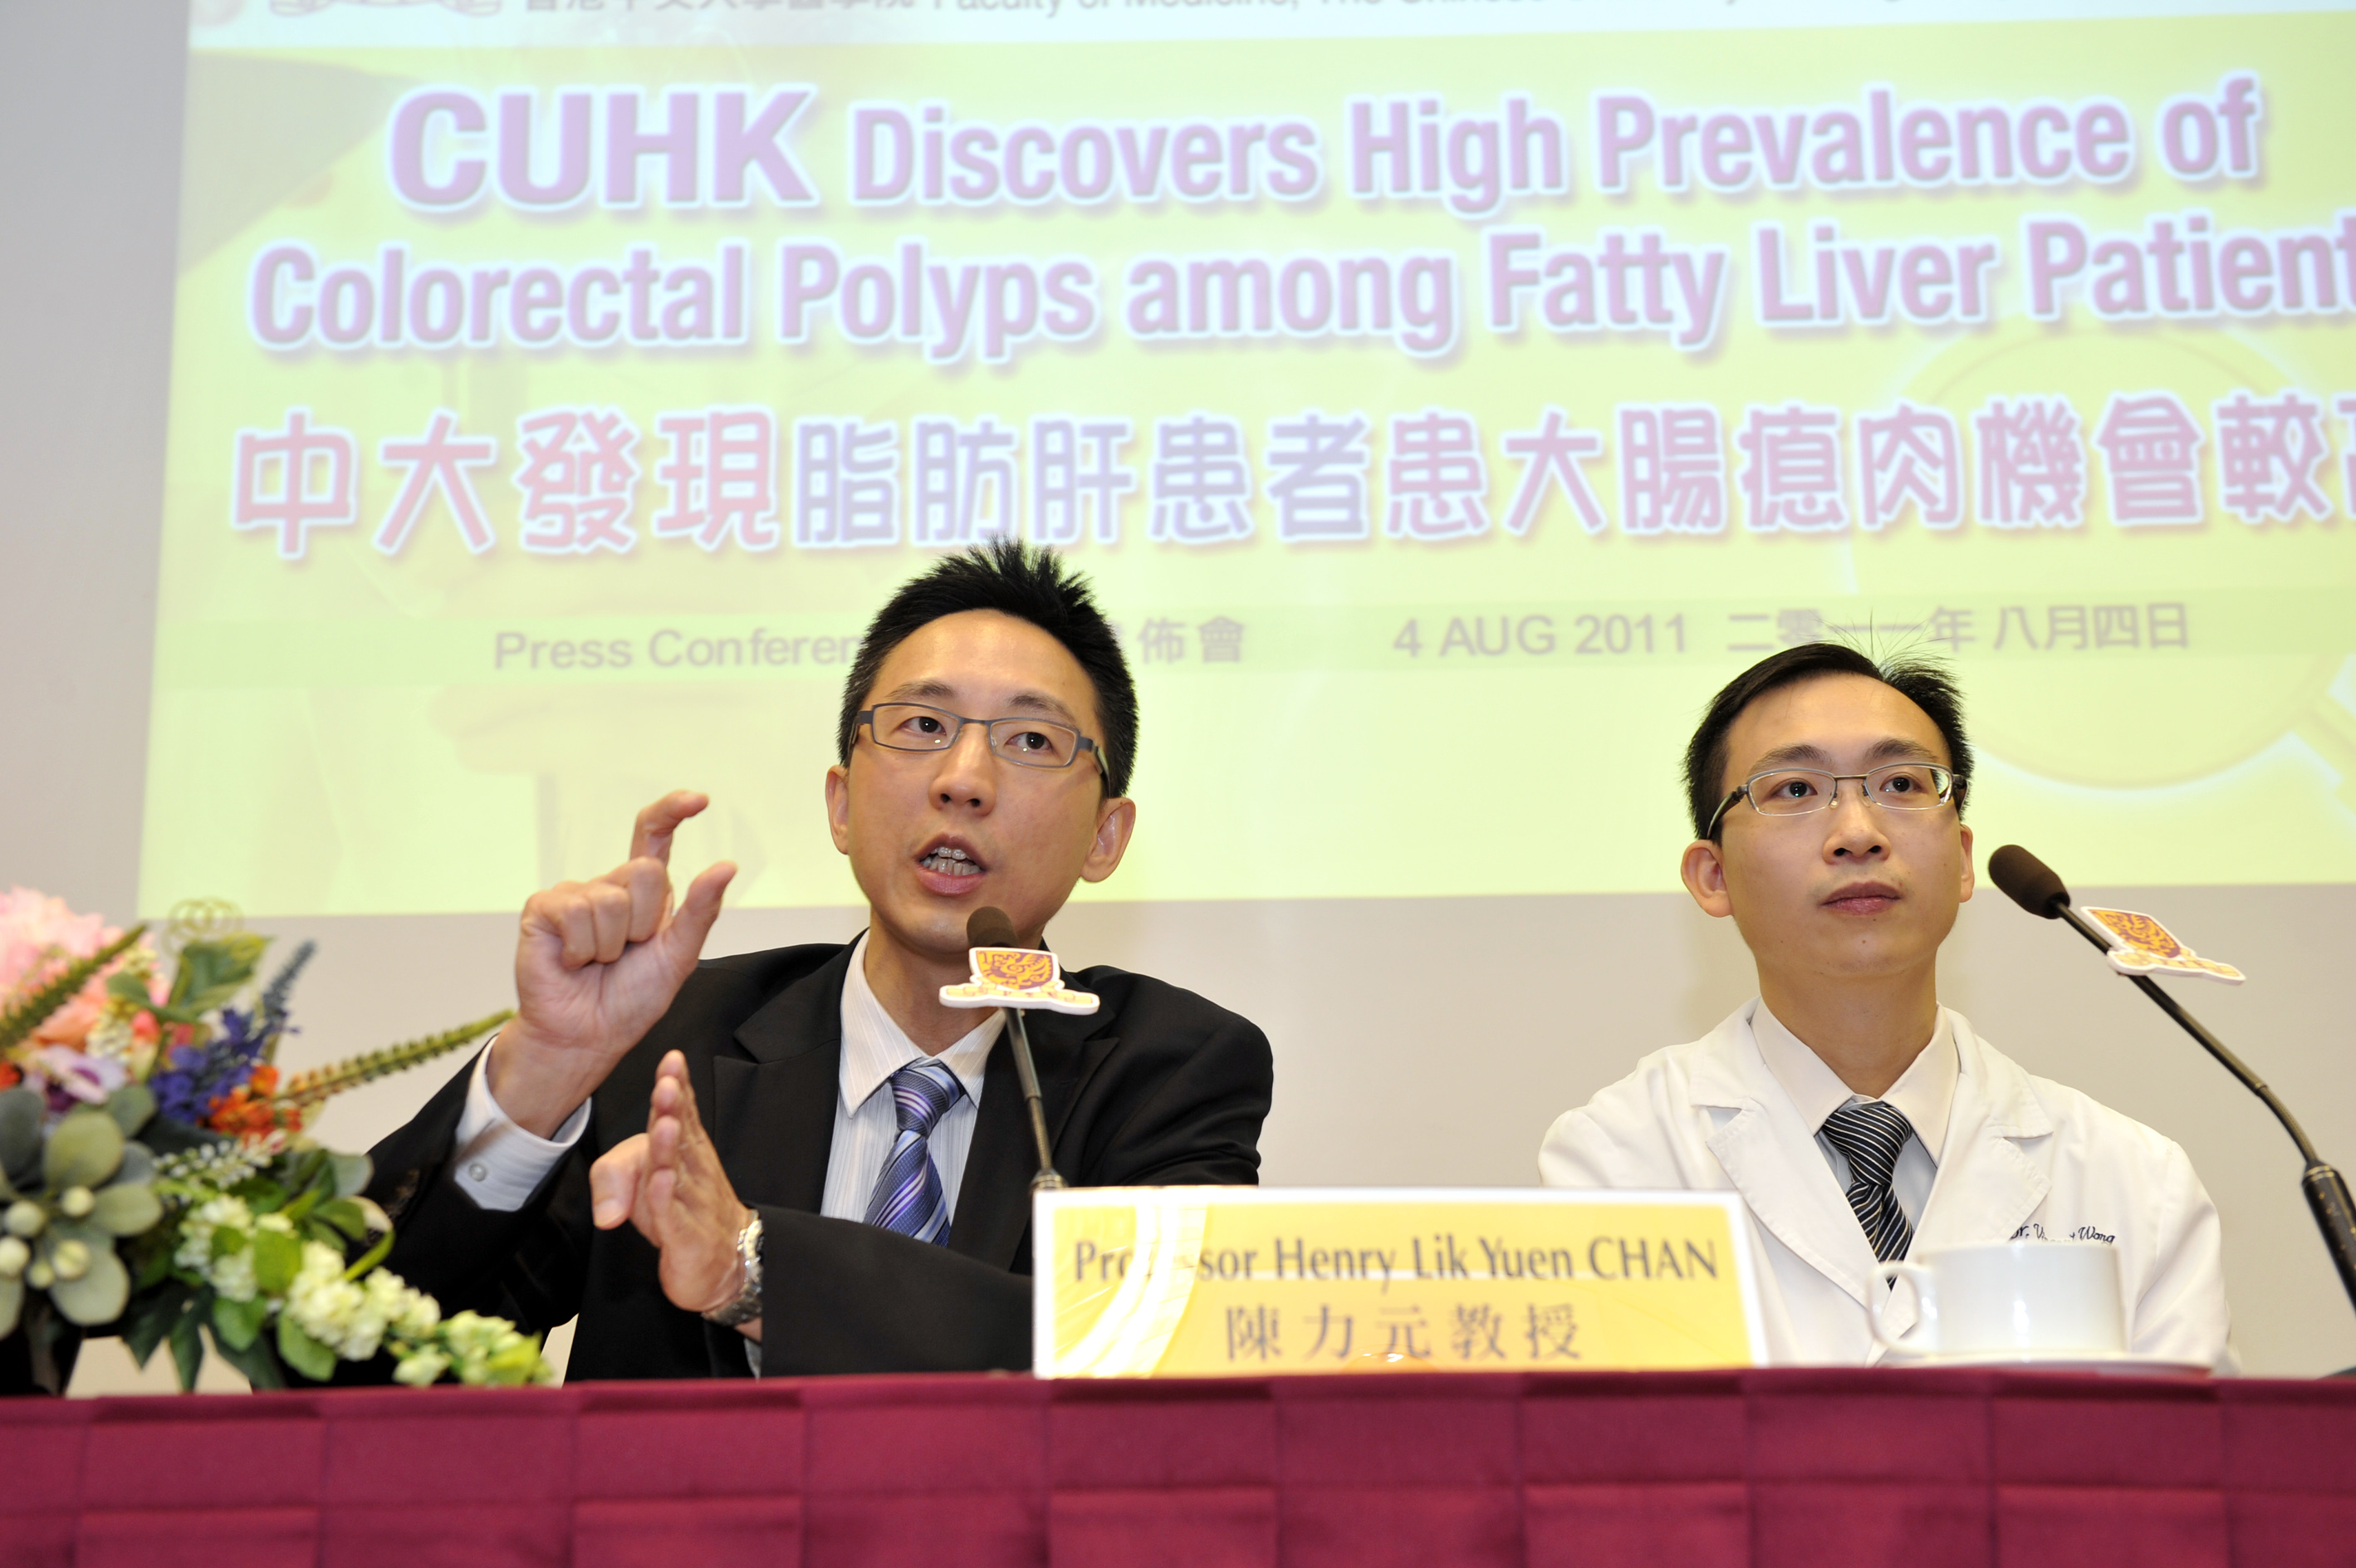 (from left) Professor Henry Lik Yuen CHAN, Director, Centre for Liver Health and Professor of Department of Medicine & Therapeutics, CUHK and Associate Professor, Professor Vincent Wai Sun WONG